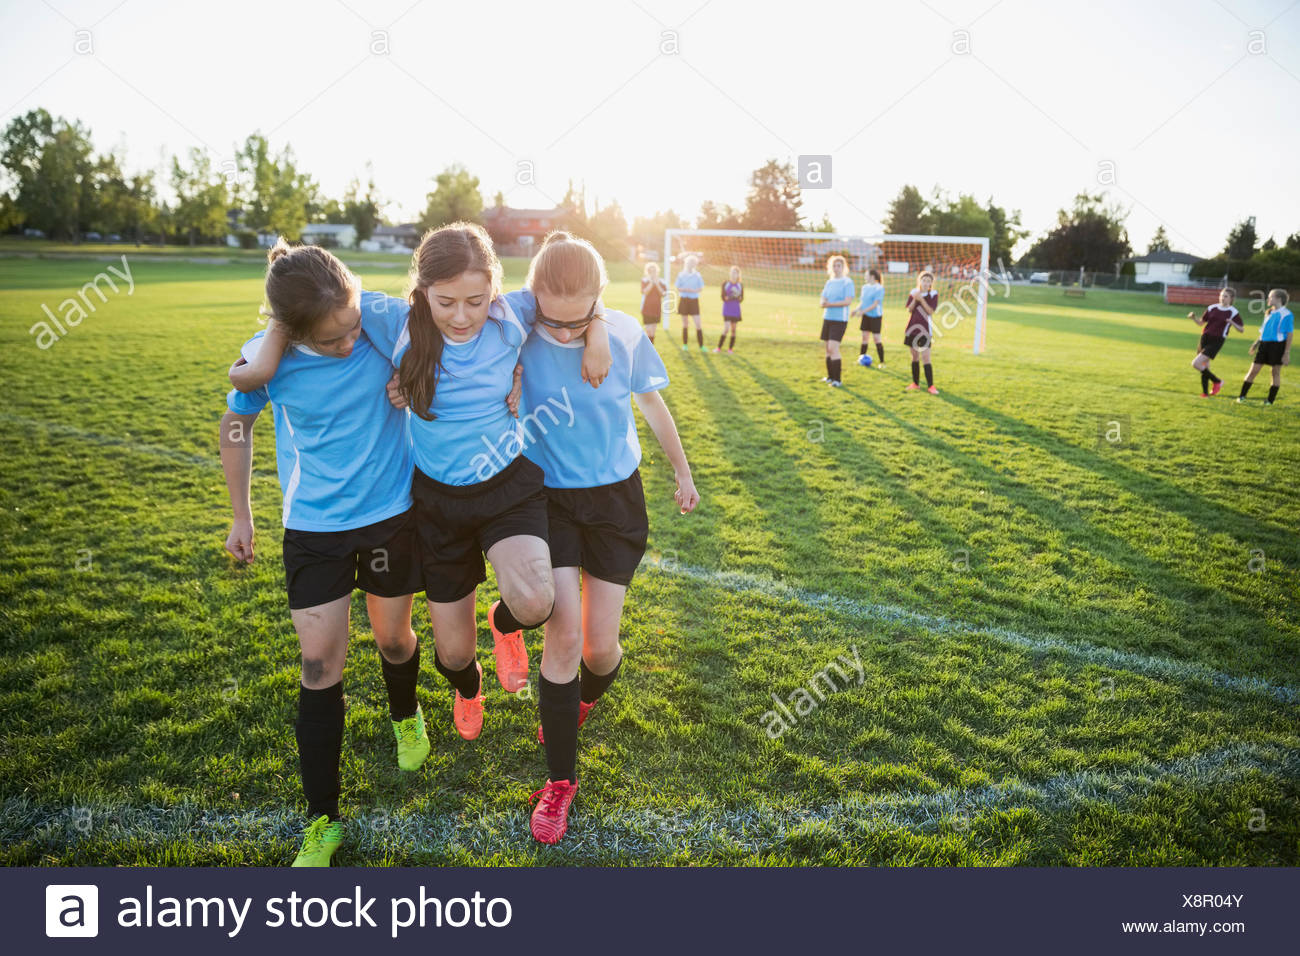 Middle school girl soccer players helping injured teammate off field - Stock Image